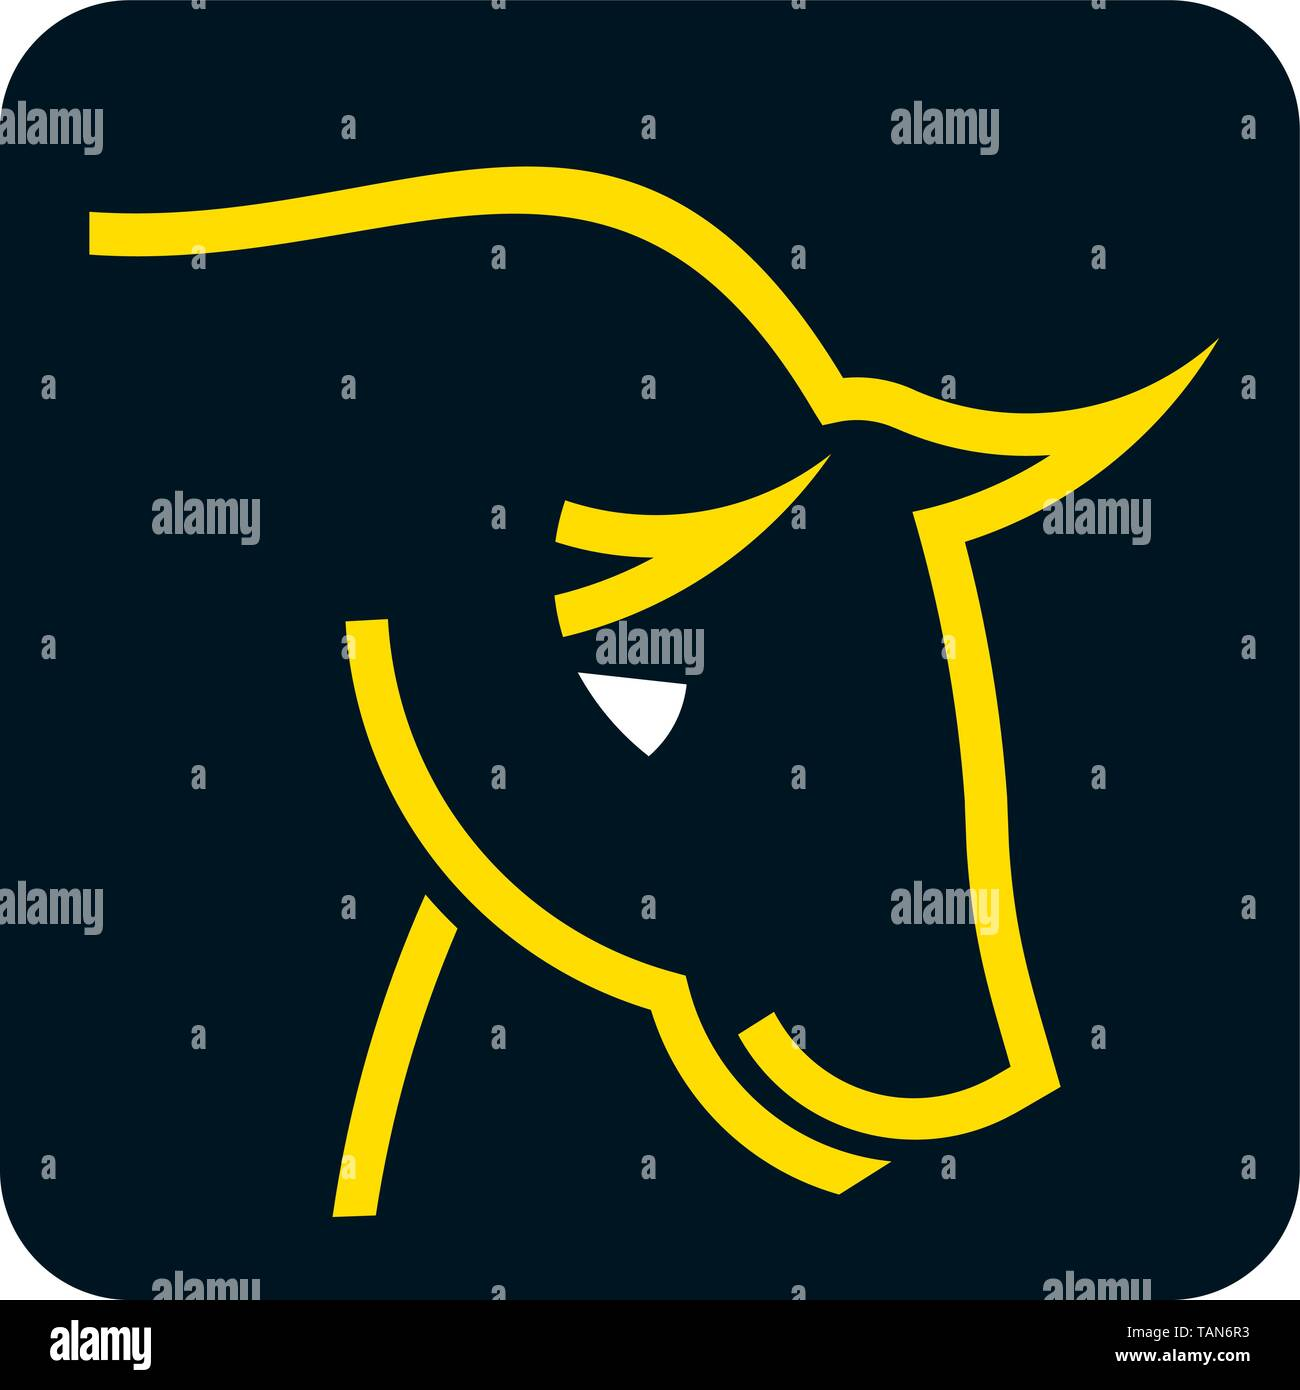 Vector illsutration of brave bull head icon in yellow and black. - Stock Vector